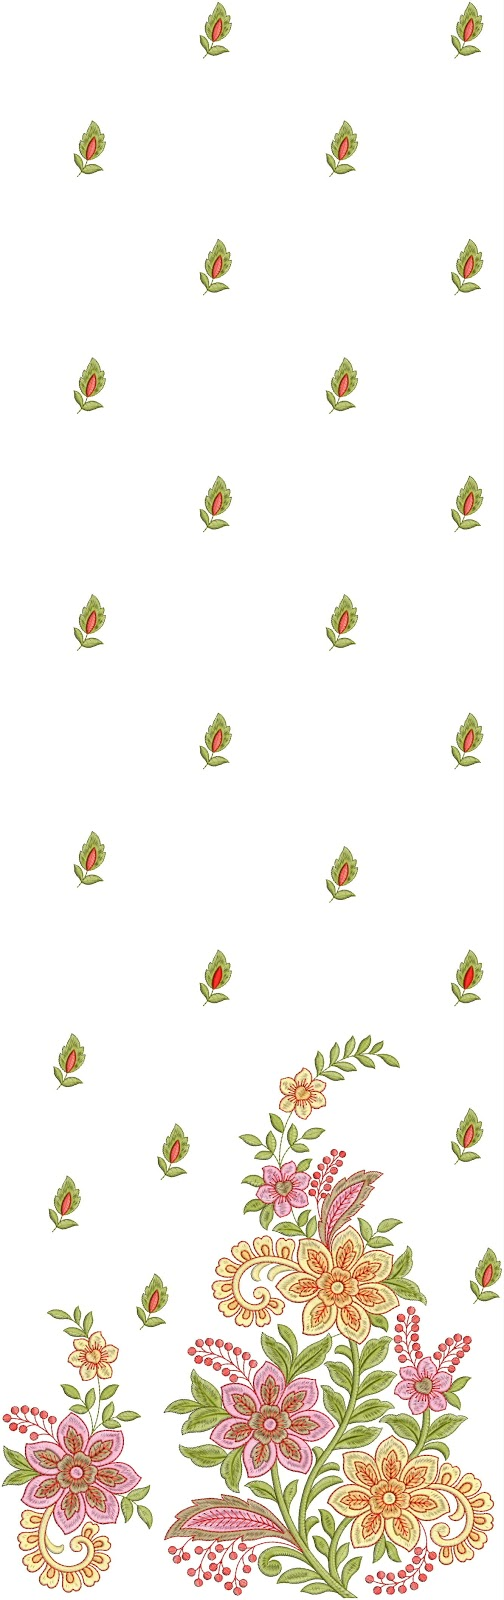 Embdesigntube daman embroidery designs for curtains